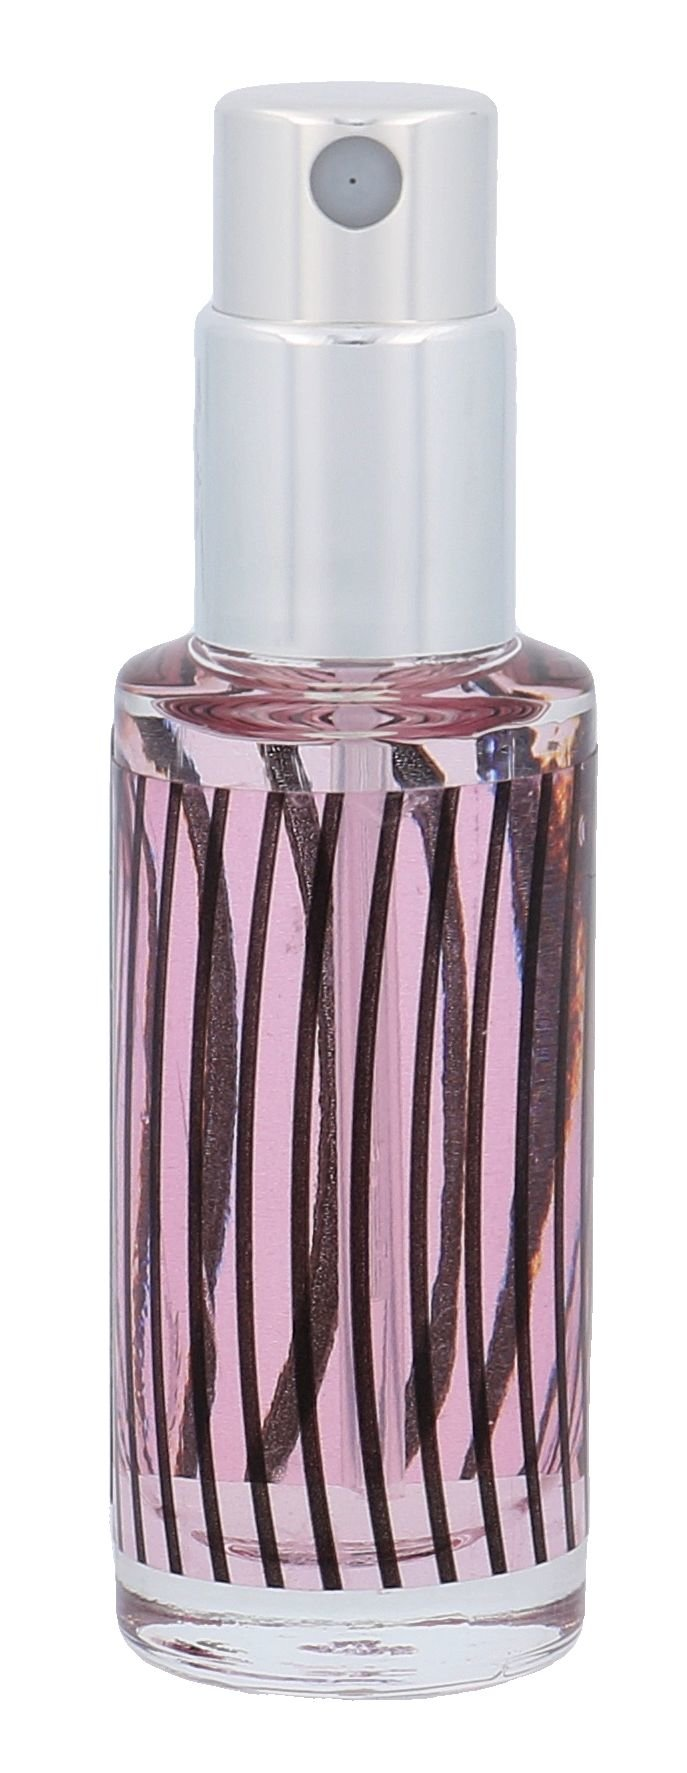 Paris Hilton Paris Hilton EDP 7,5ml